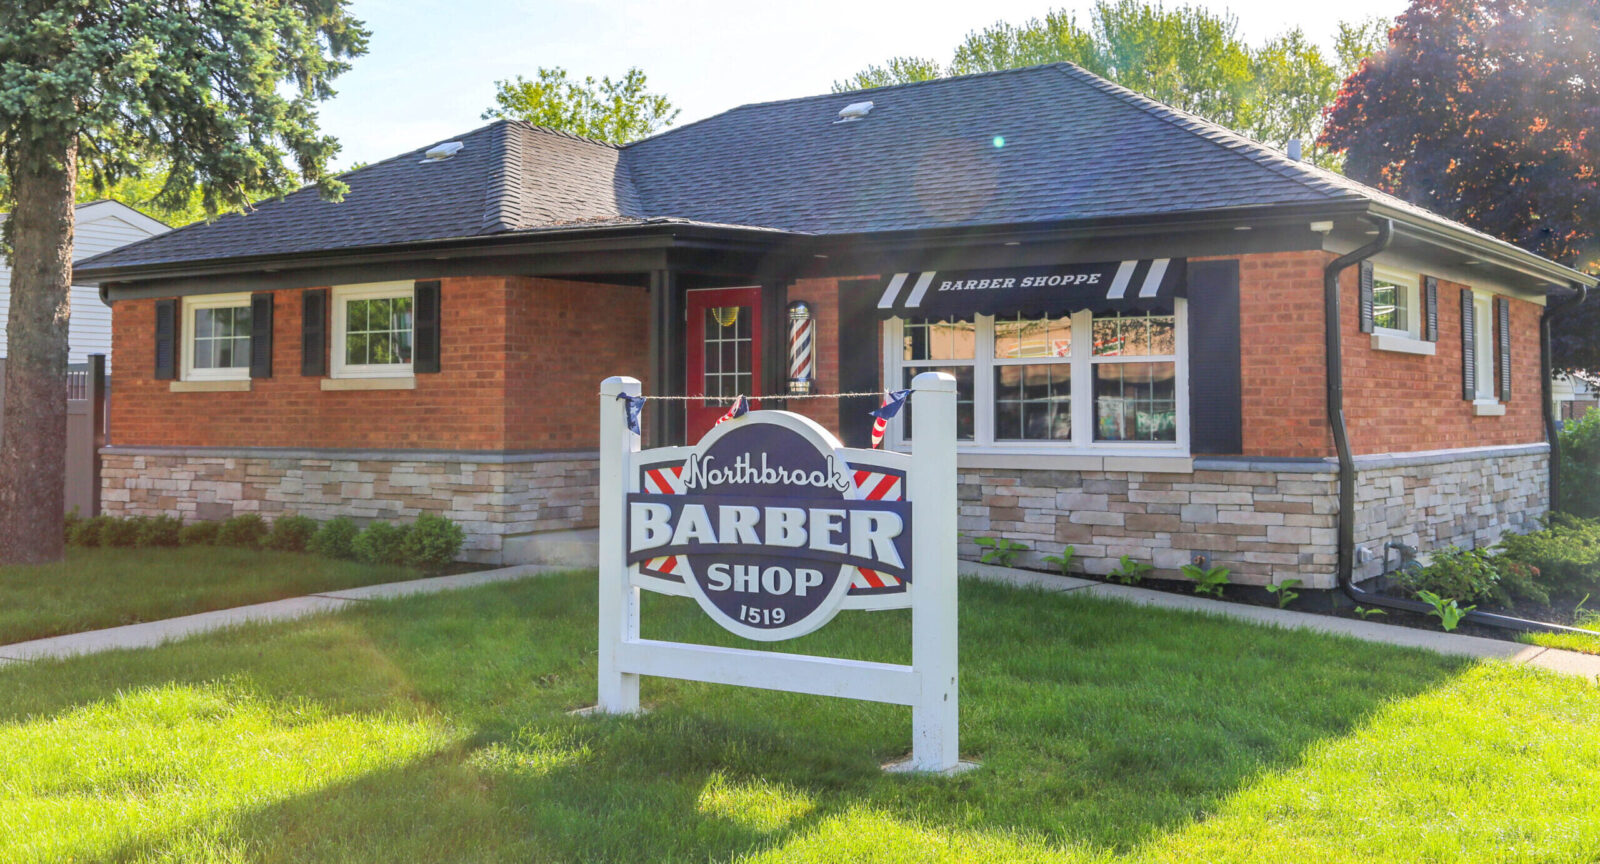 Northbrook Barber Shop sign